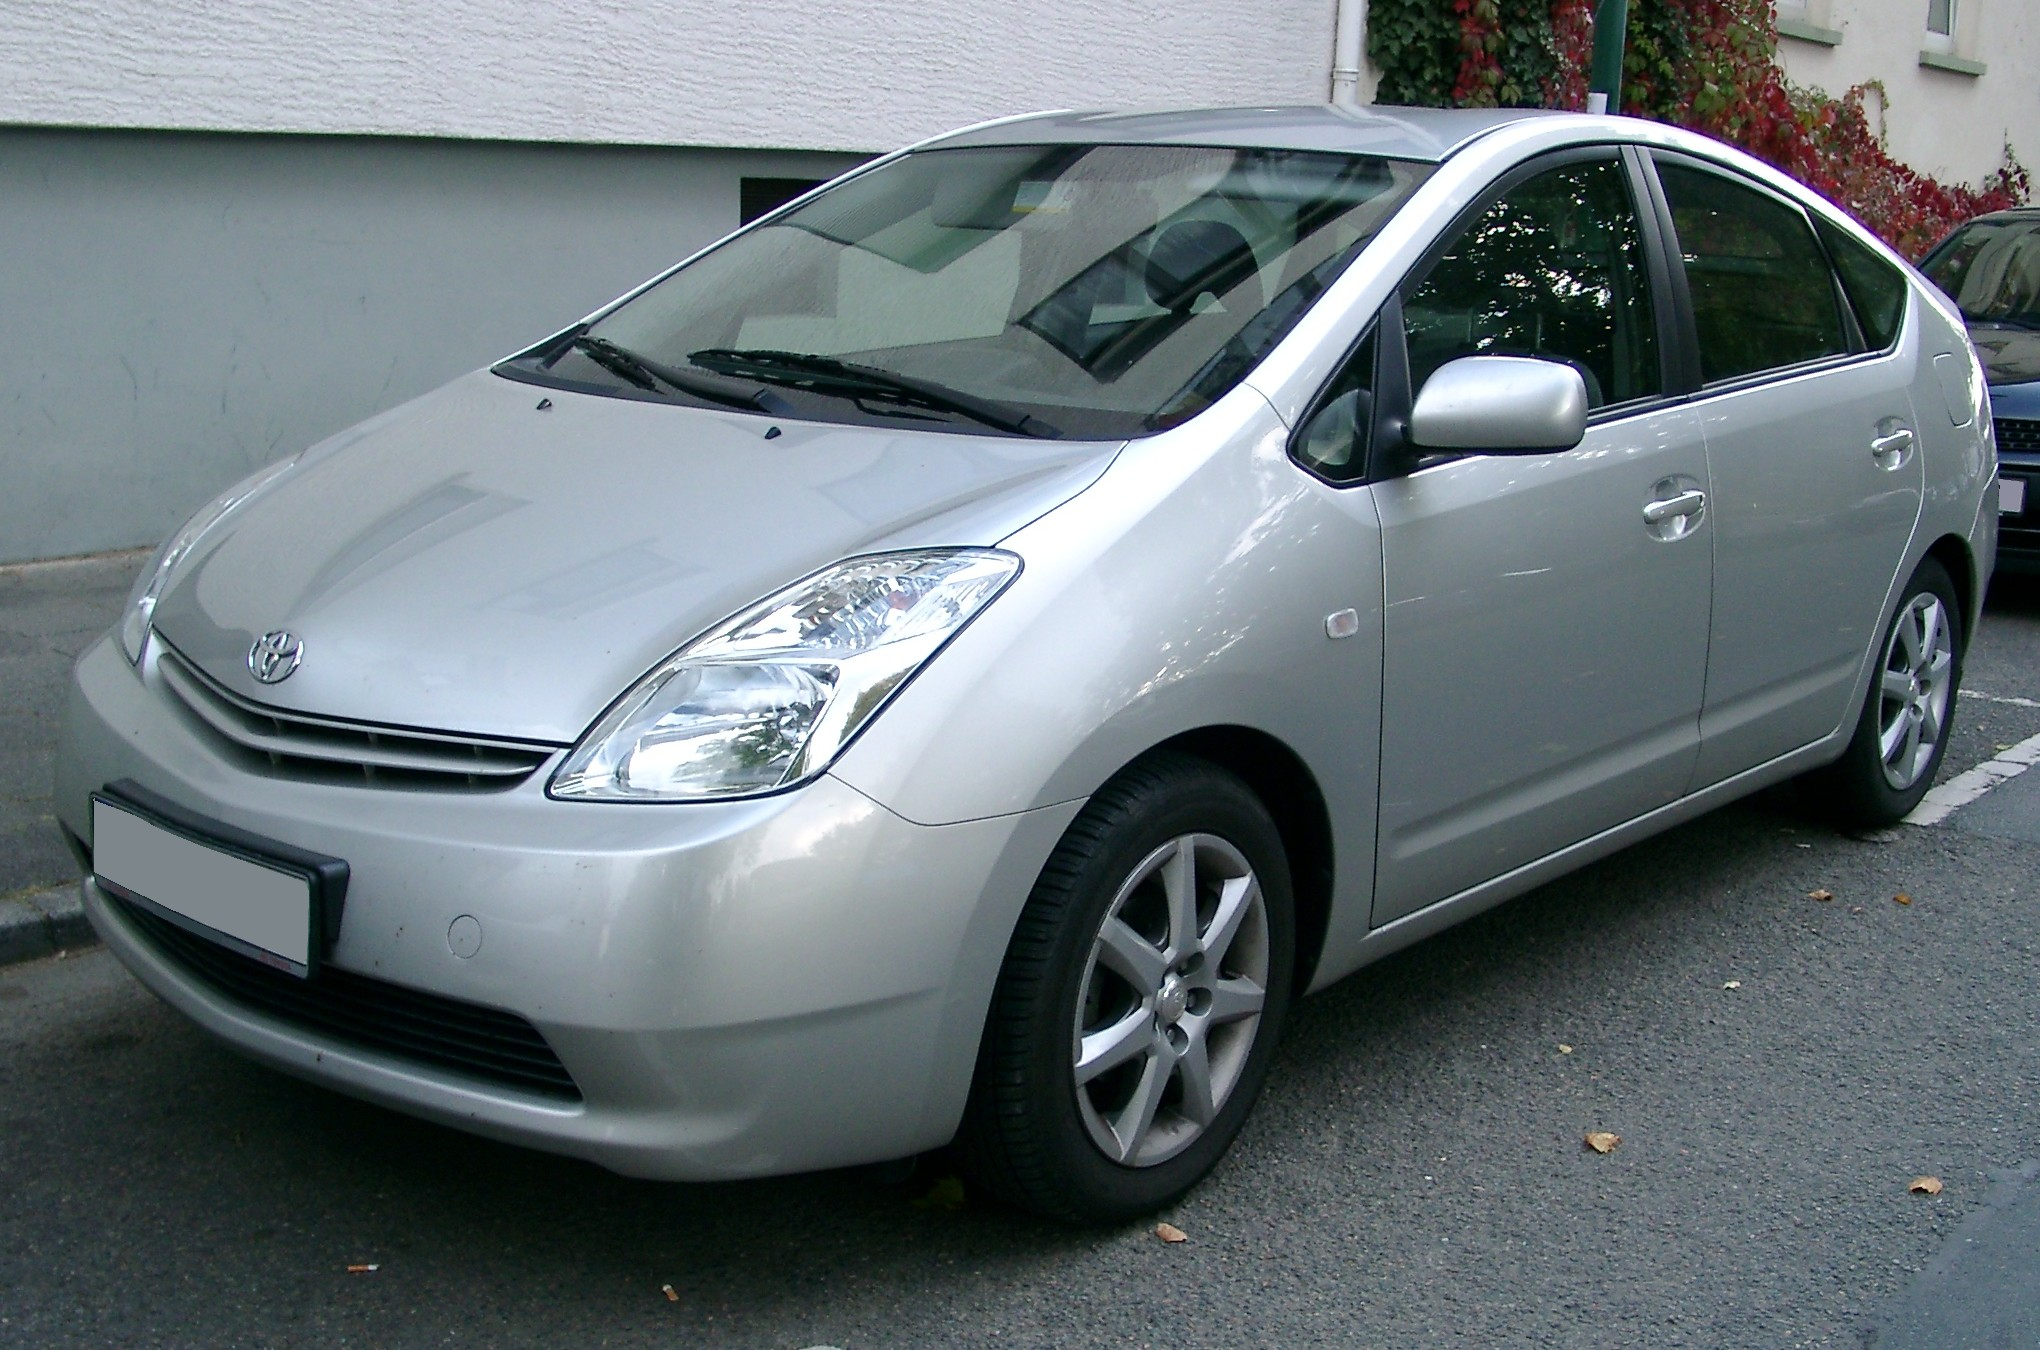 File:Toyota Prius front 20070924 jpg - Wikimedia Commons